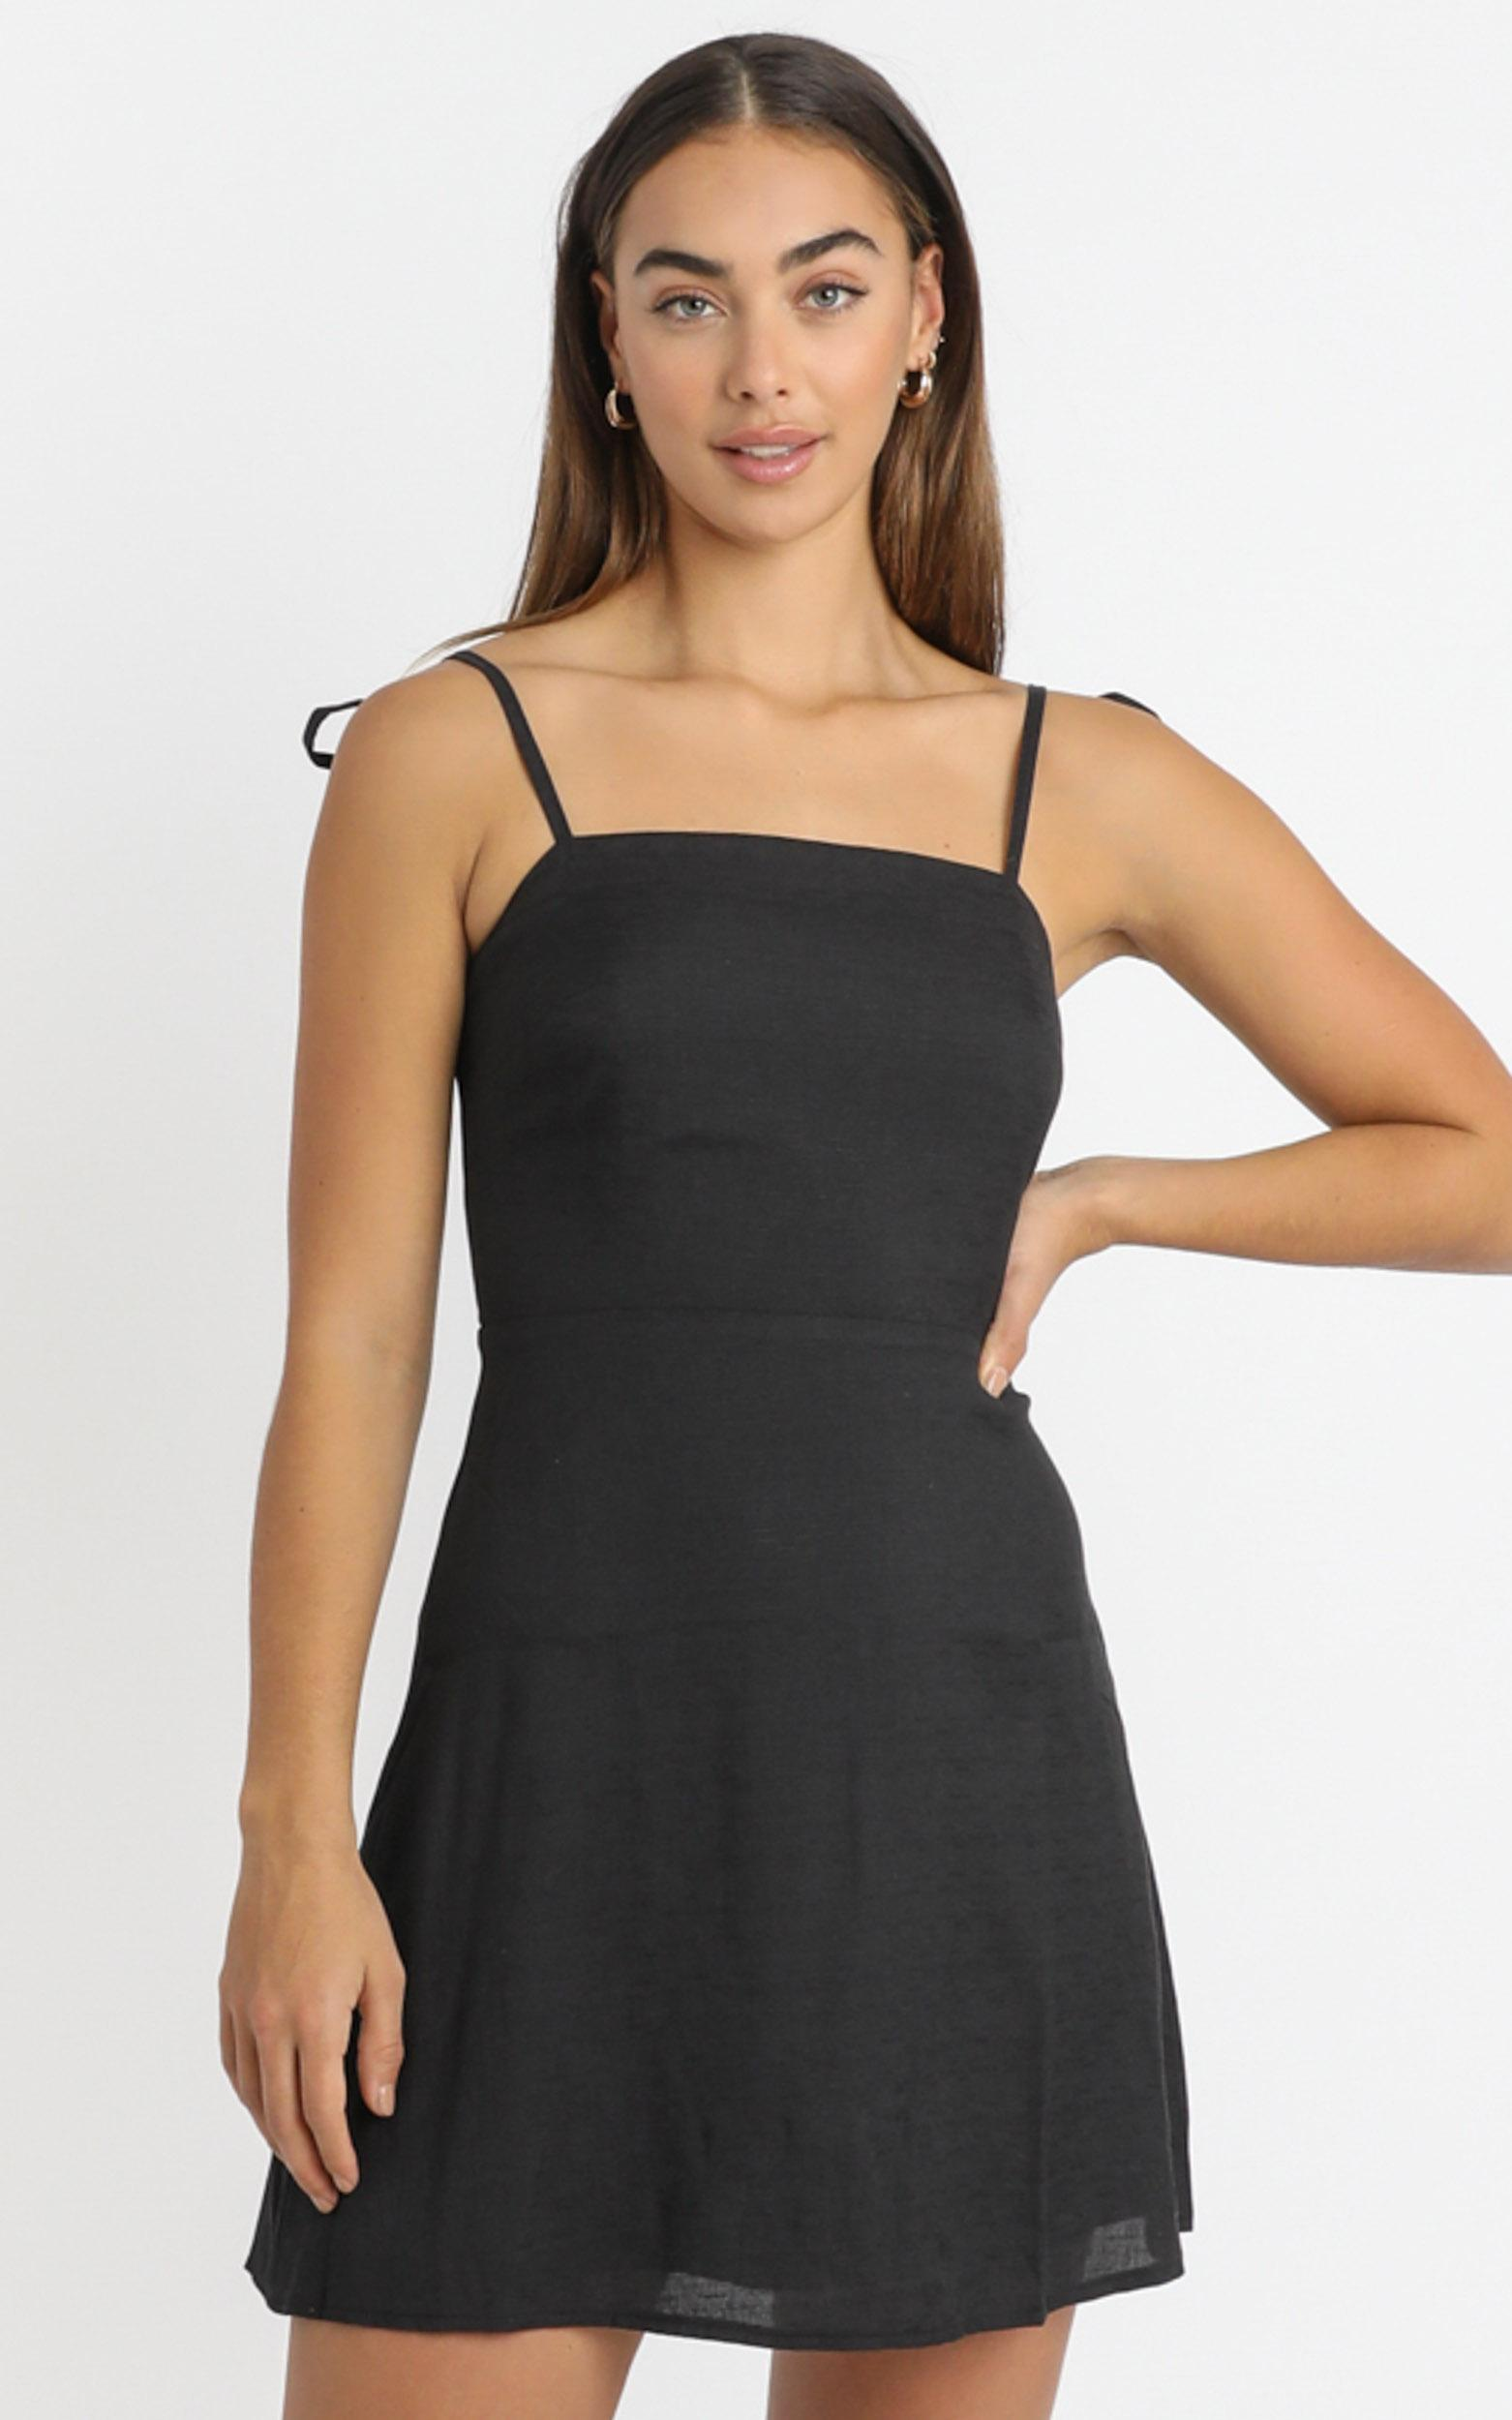 Afternoon Glow Dress in charcoal - 20 (XXXXL), Charcoal, hi-res image number null